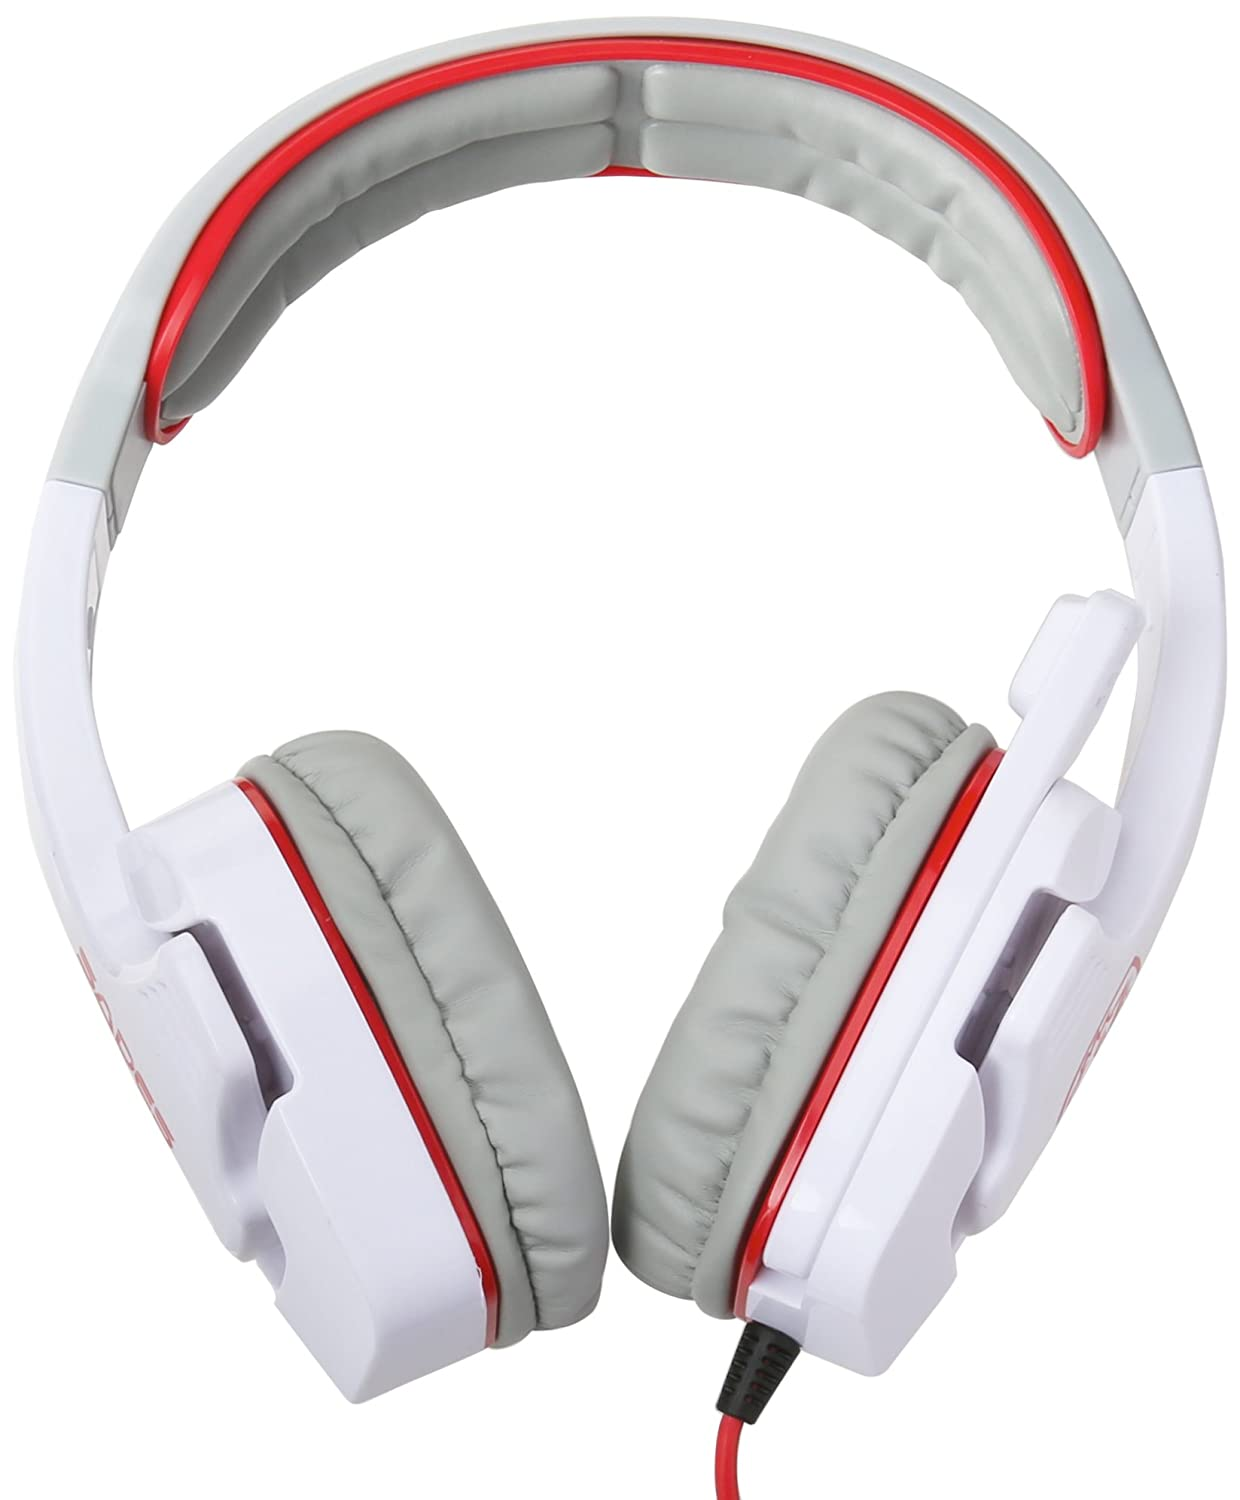 Sades Sa 708 Stereo Gaming Headset With Microphone T Power 701 White Pc Video Games